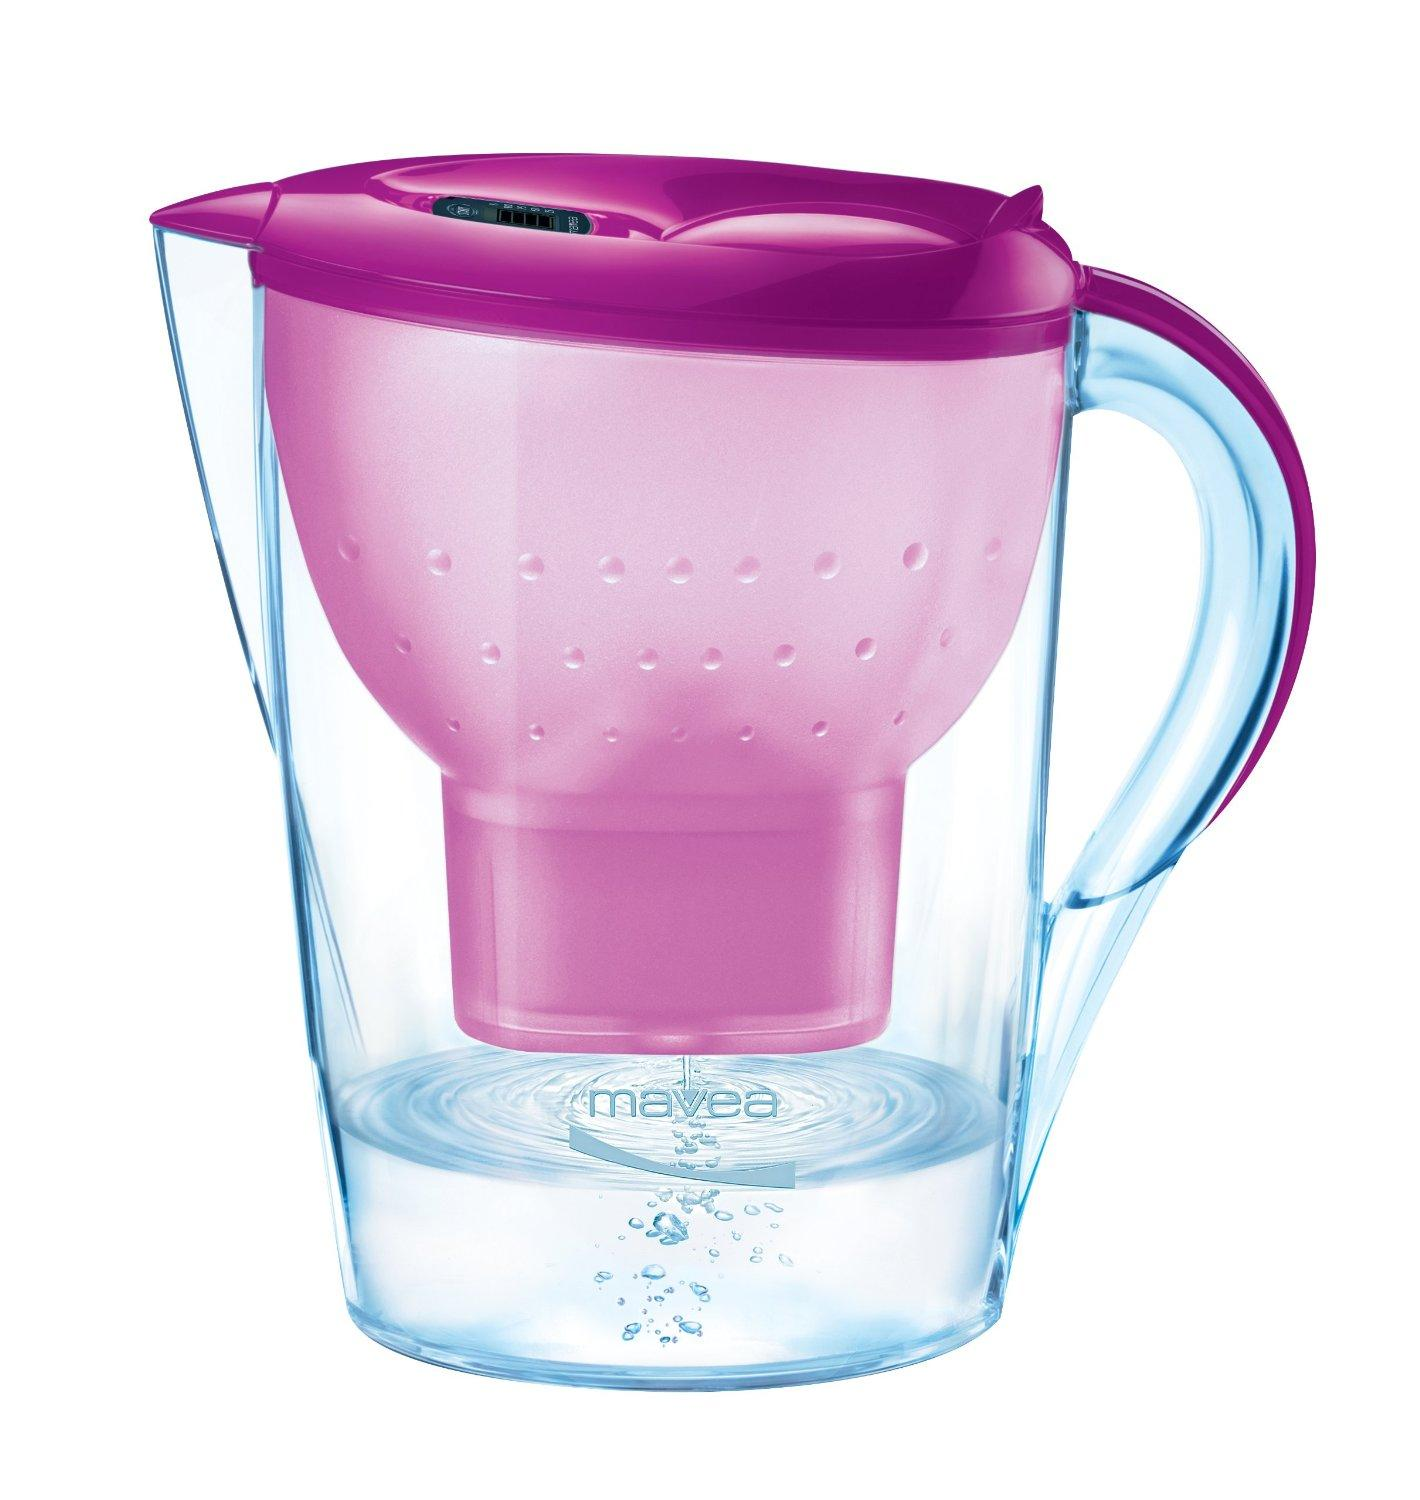 $17.78 MAVEA 1009652 Marella XL 8-Cup Water Filtration Pitcher